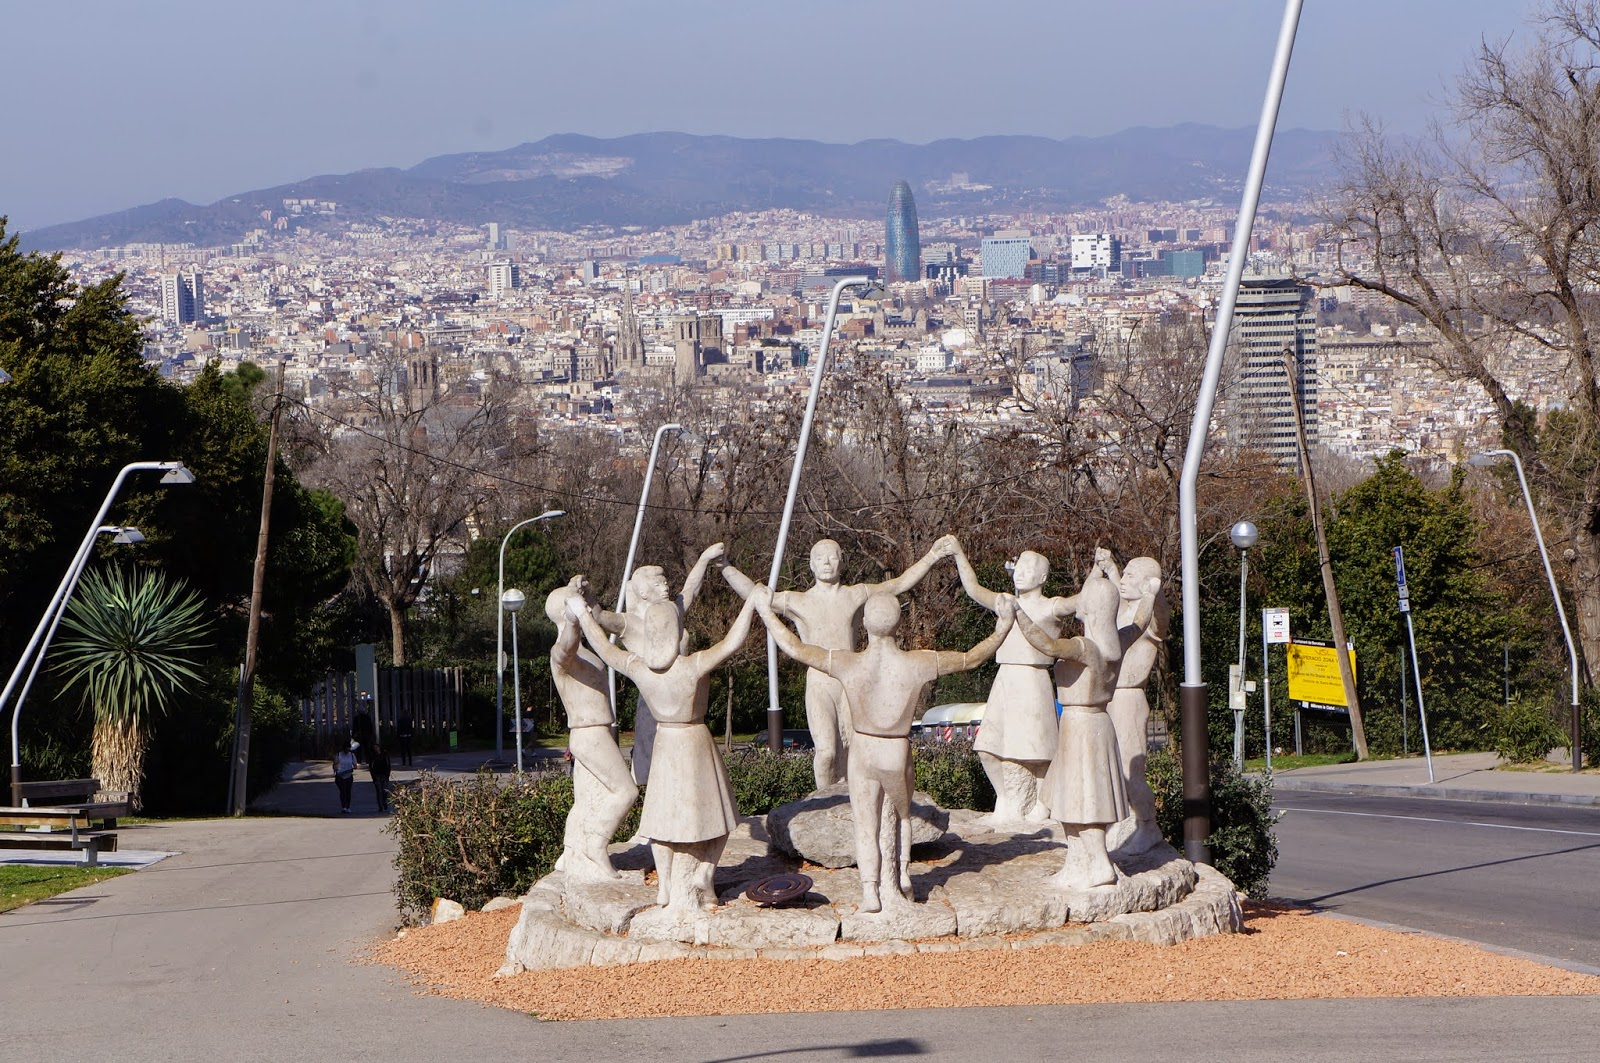 Fun and joyful statues in Barcelona Spain.